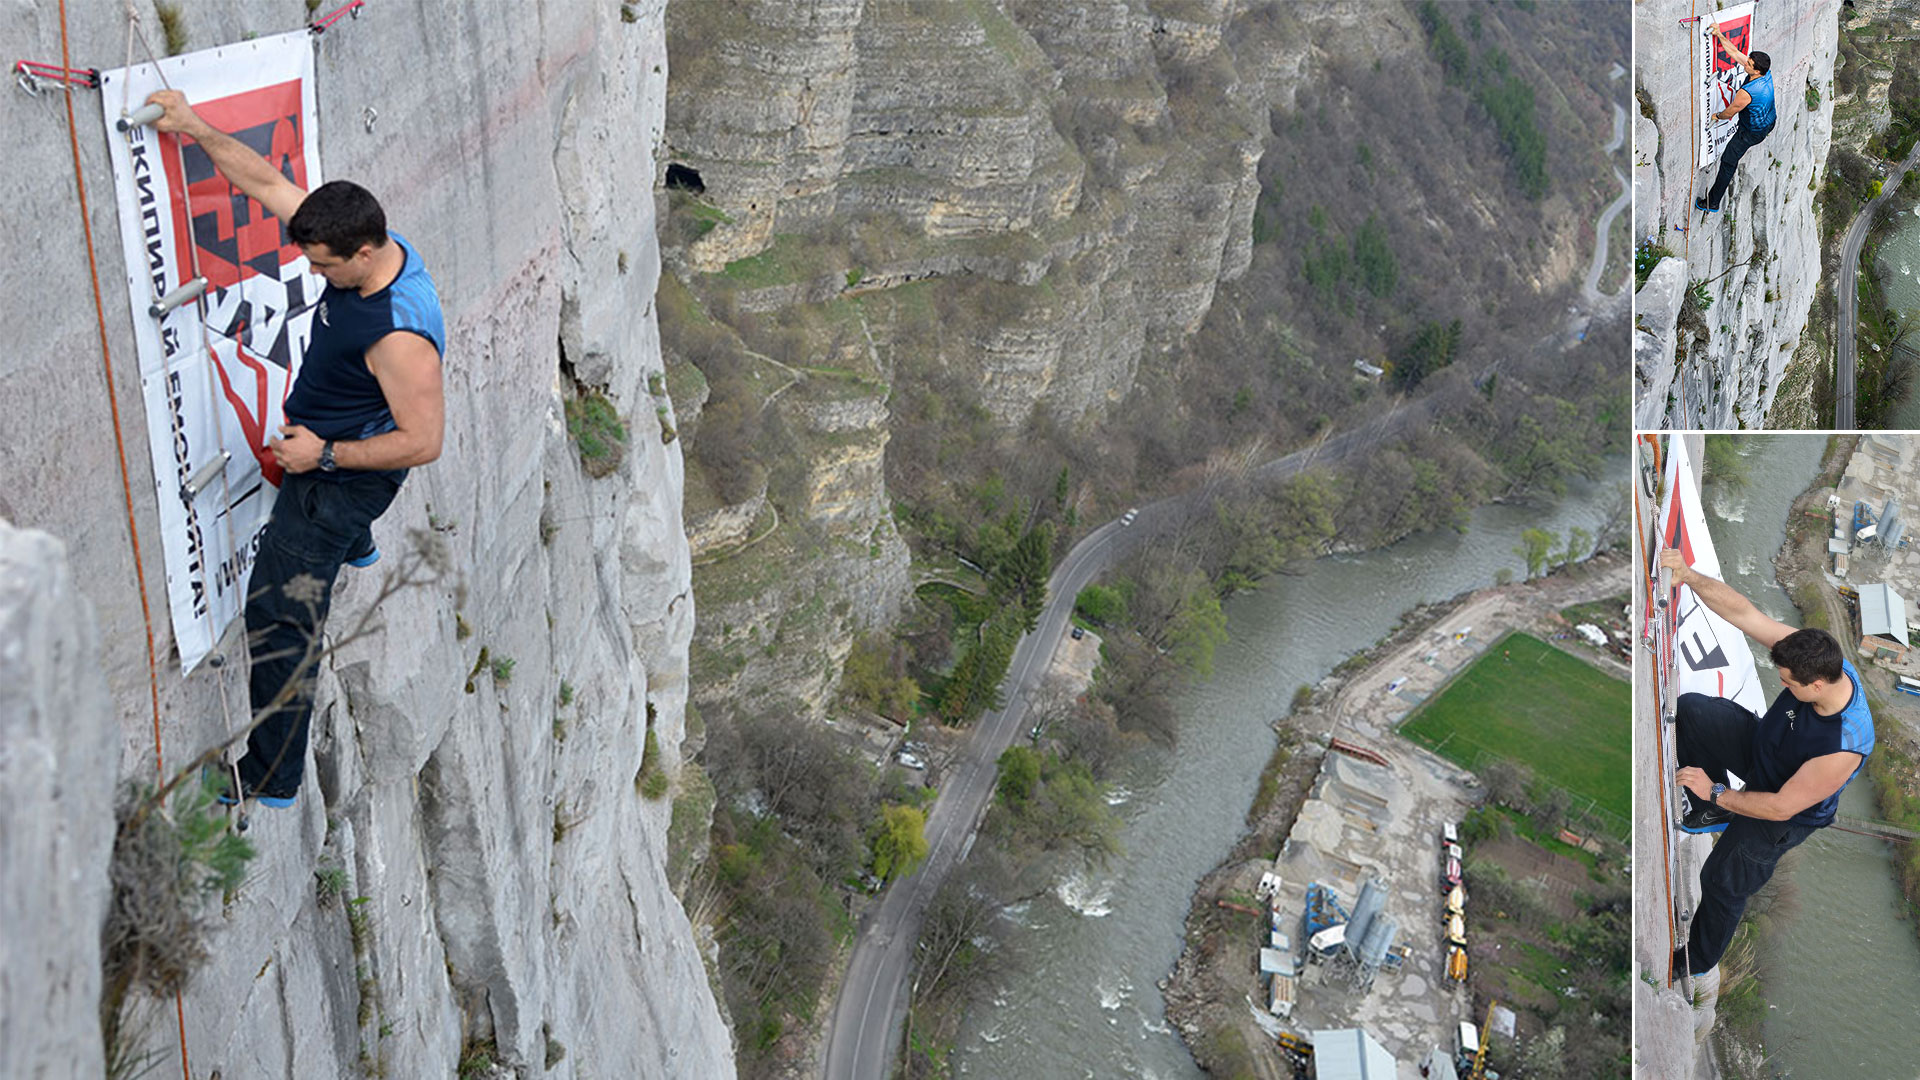 Club Rope Access